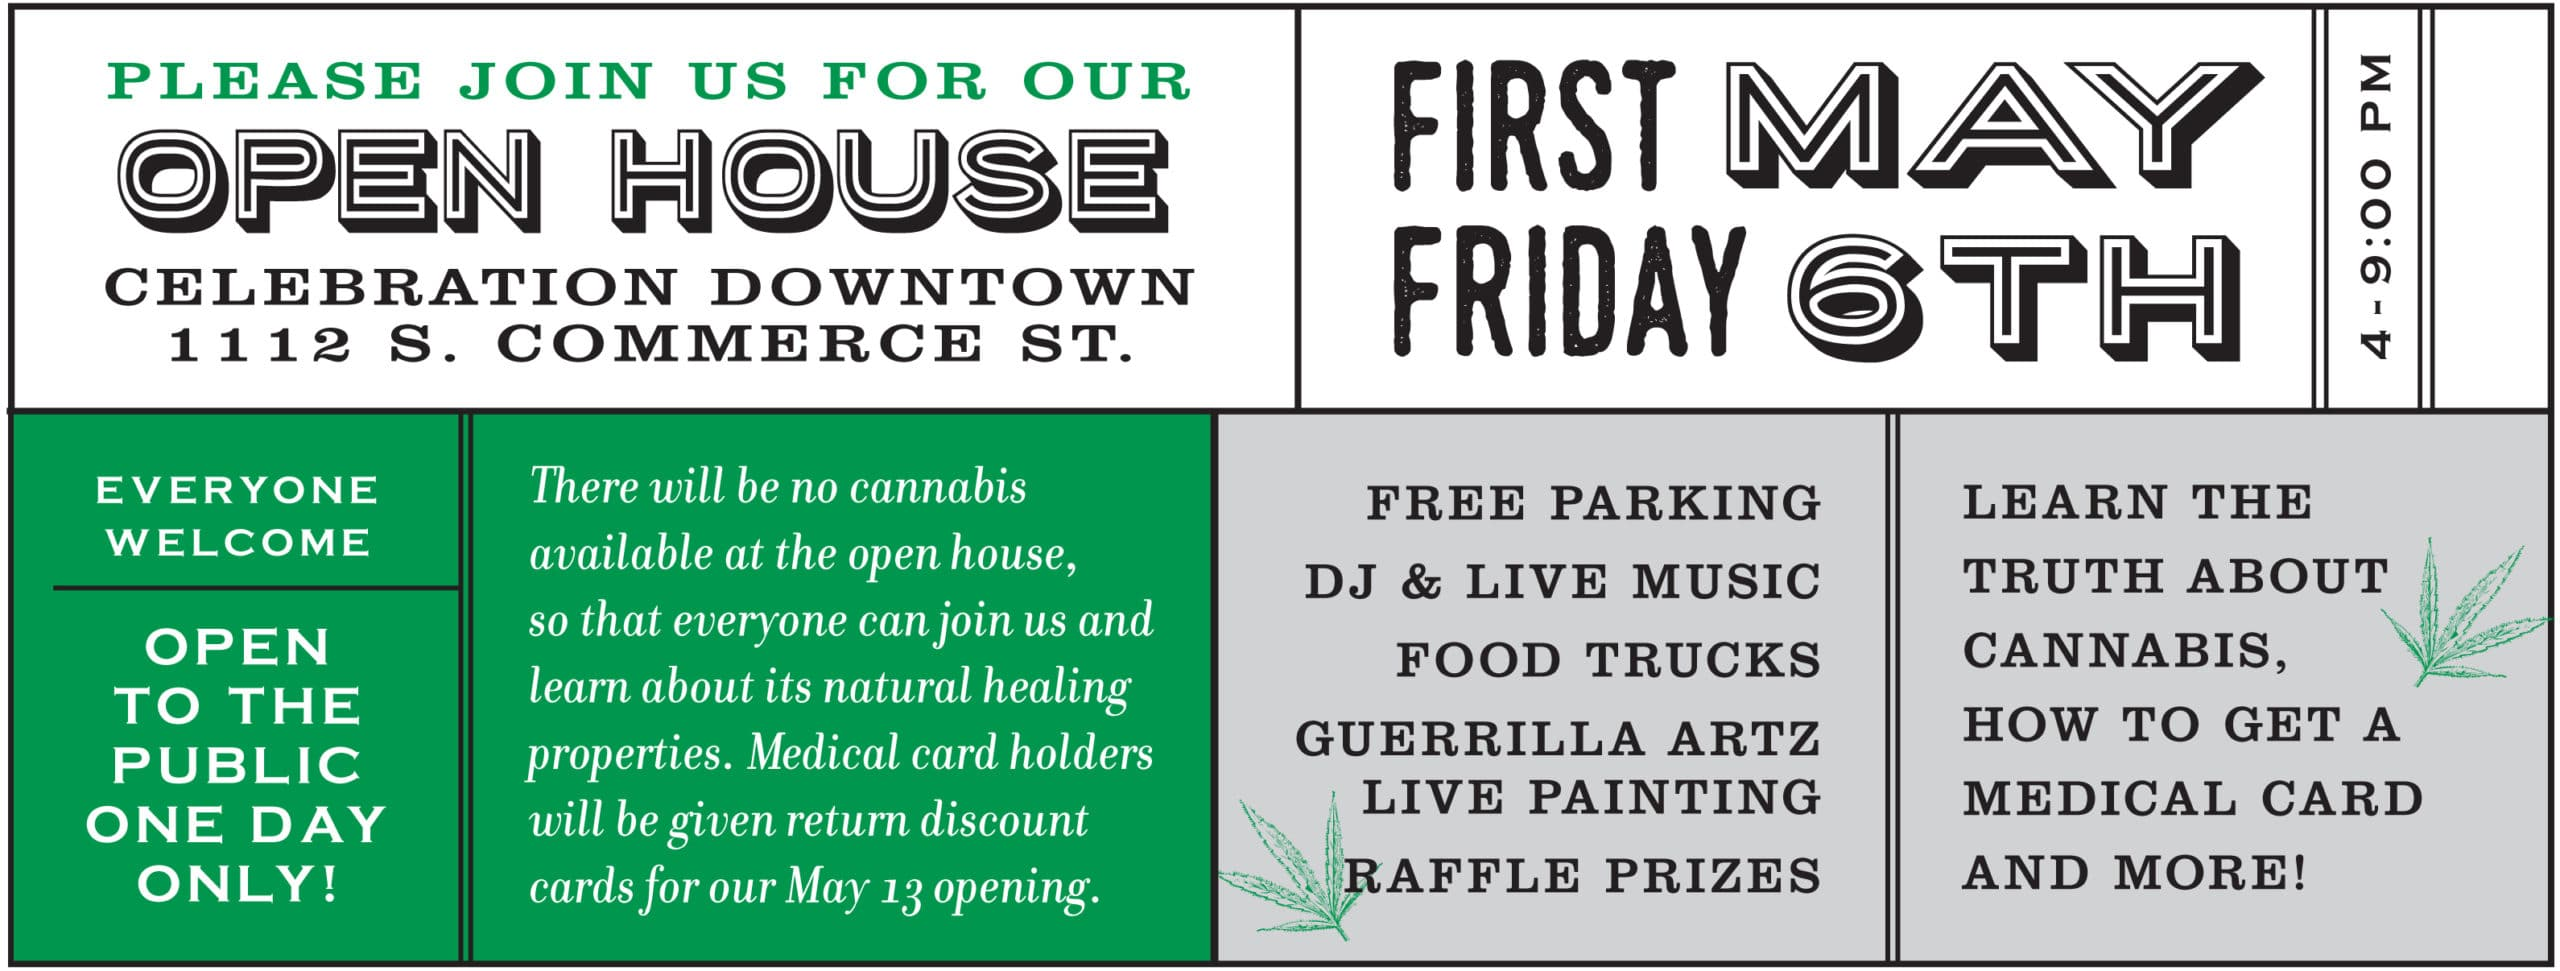 OPEN HOUSE CELEBRATION DOWNTOWN 1112 S. Commerce St. First Friday May 6th from 4-9pm OPEN TO THE PUBLIC ONE DAY ONLY! There will be no cannabis available at the open house, so that everyone can join us and learn about its natural healing properties. Medical Marijuana card holders will be given special return discount cards for our May 13 opening. FREE PARKING DJ & LIVE MUSIC FOOD TRUCKS GUERRILLA ARTZ LIVE PAINTING RAFFLE PRIZES Learn the truth about cannabis, how to get a medical card, master cultivators and more!